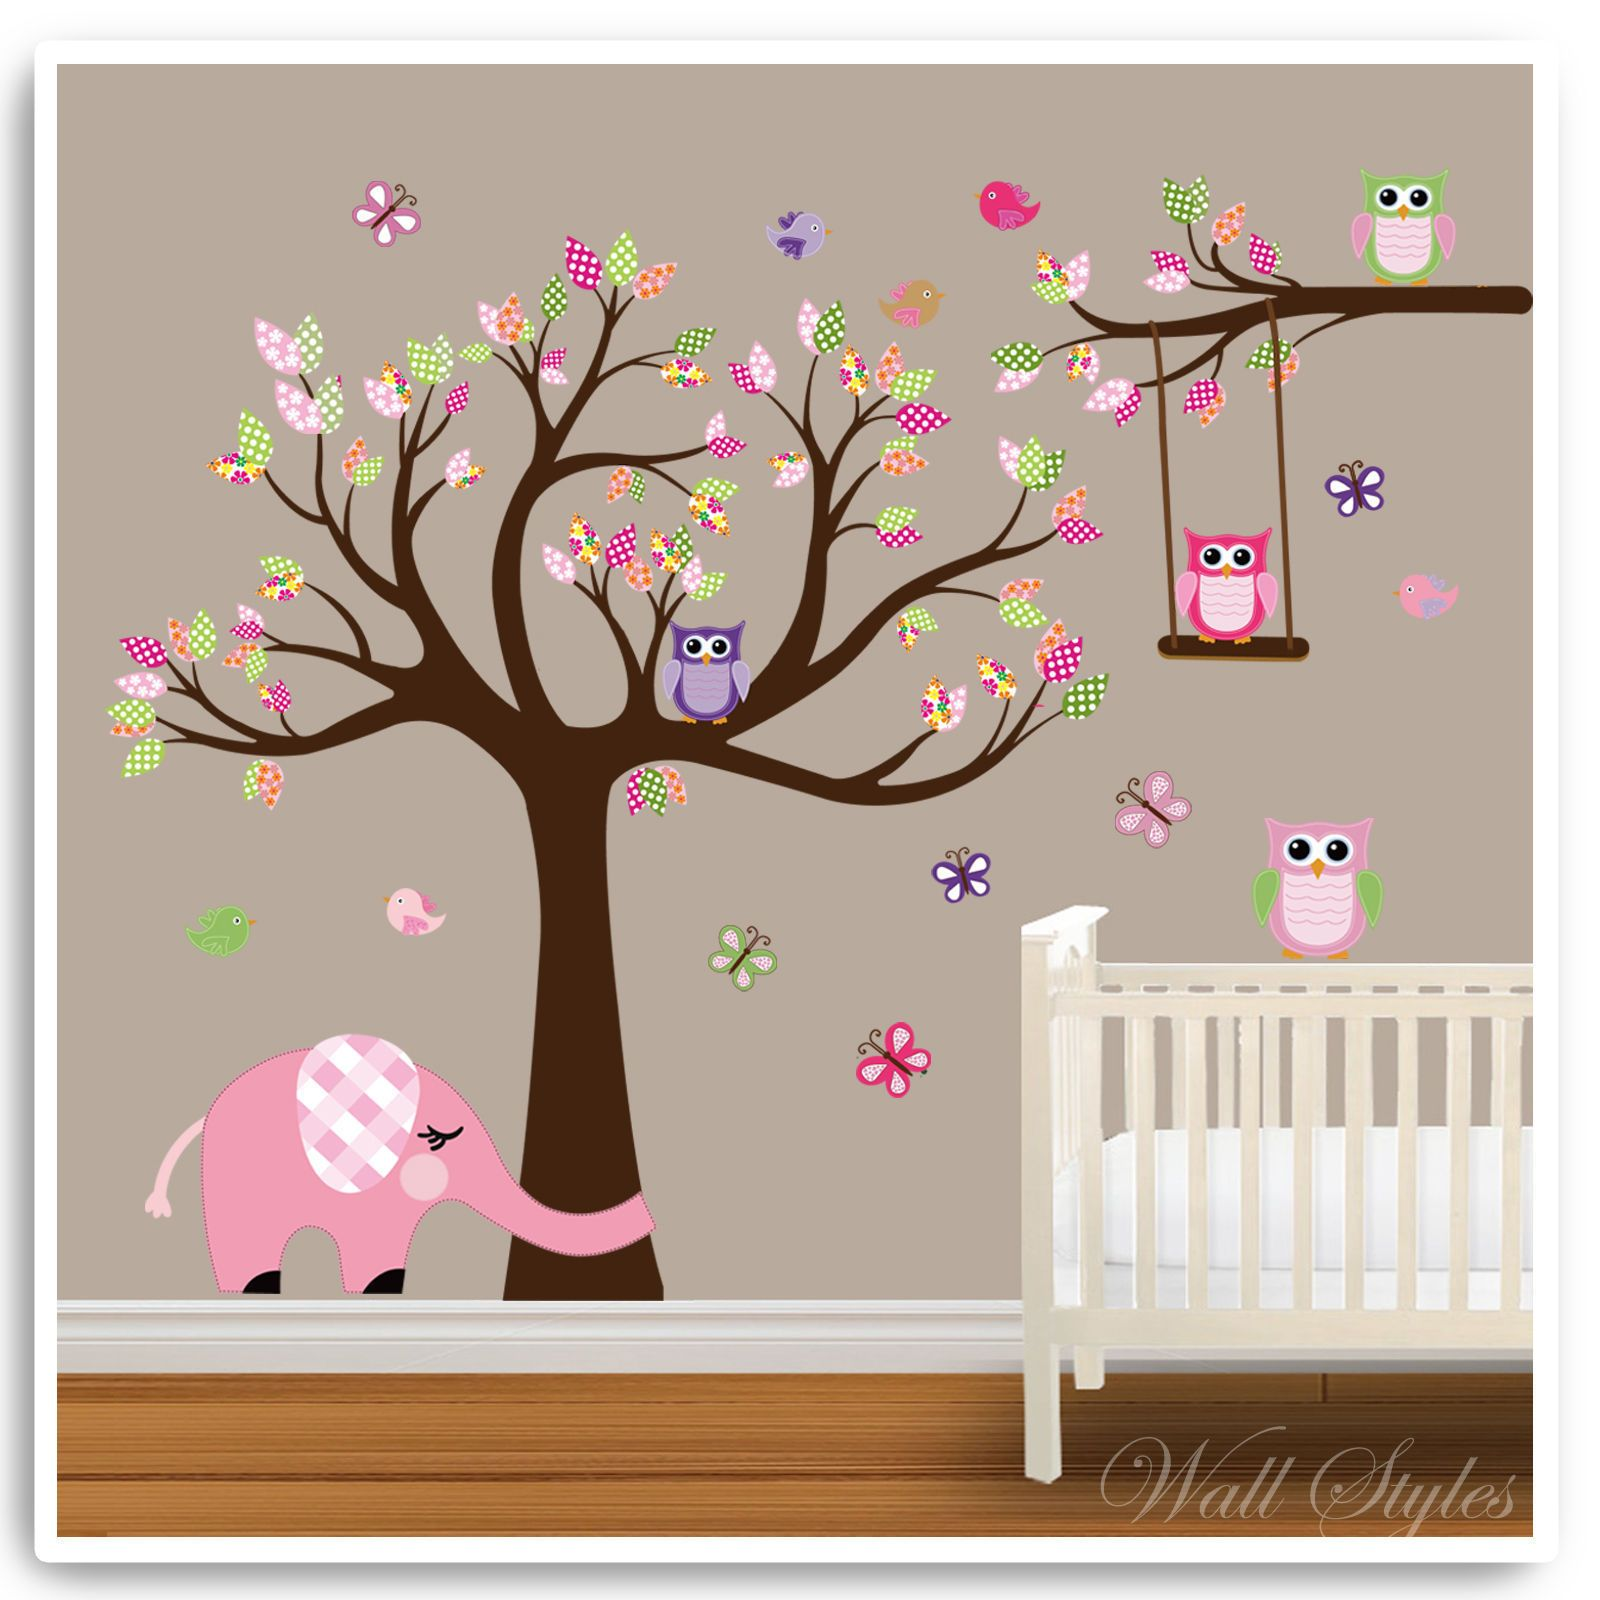 Details about animal wall stickers owl jungle zoo tree baby details about animal wall stickers owl jungle zoo tree baby nursery bedroom decals mural art amipublicfo Image collections